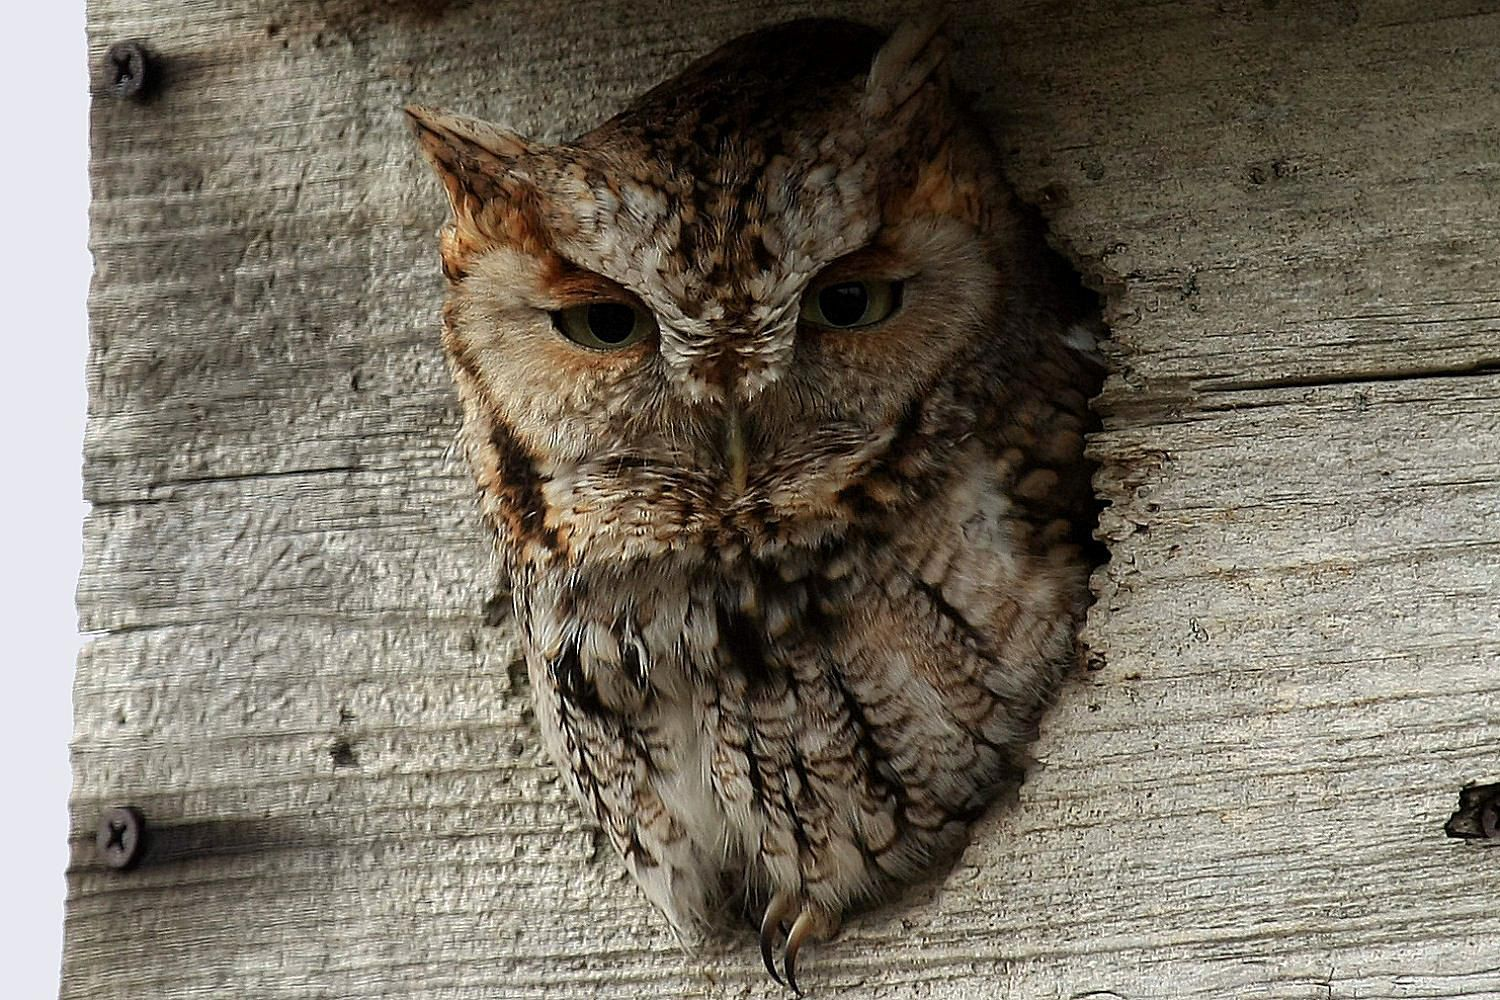 How to Attract Owls to Your Yard